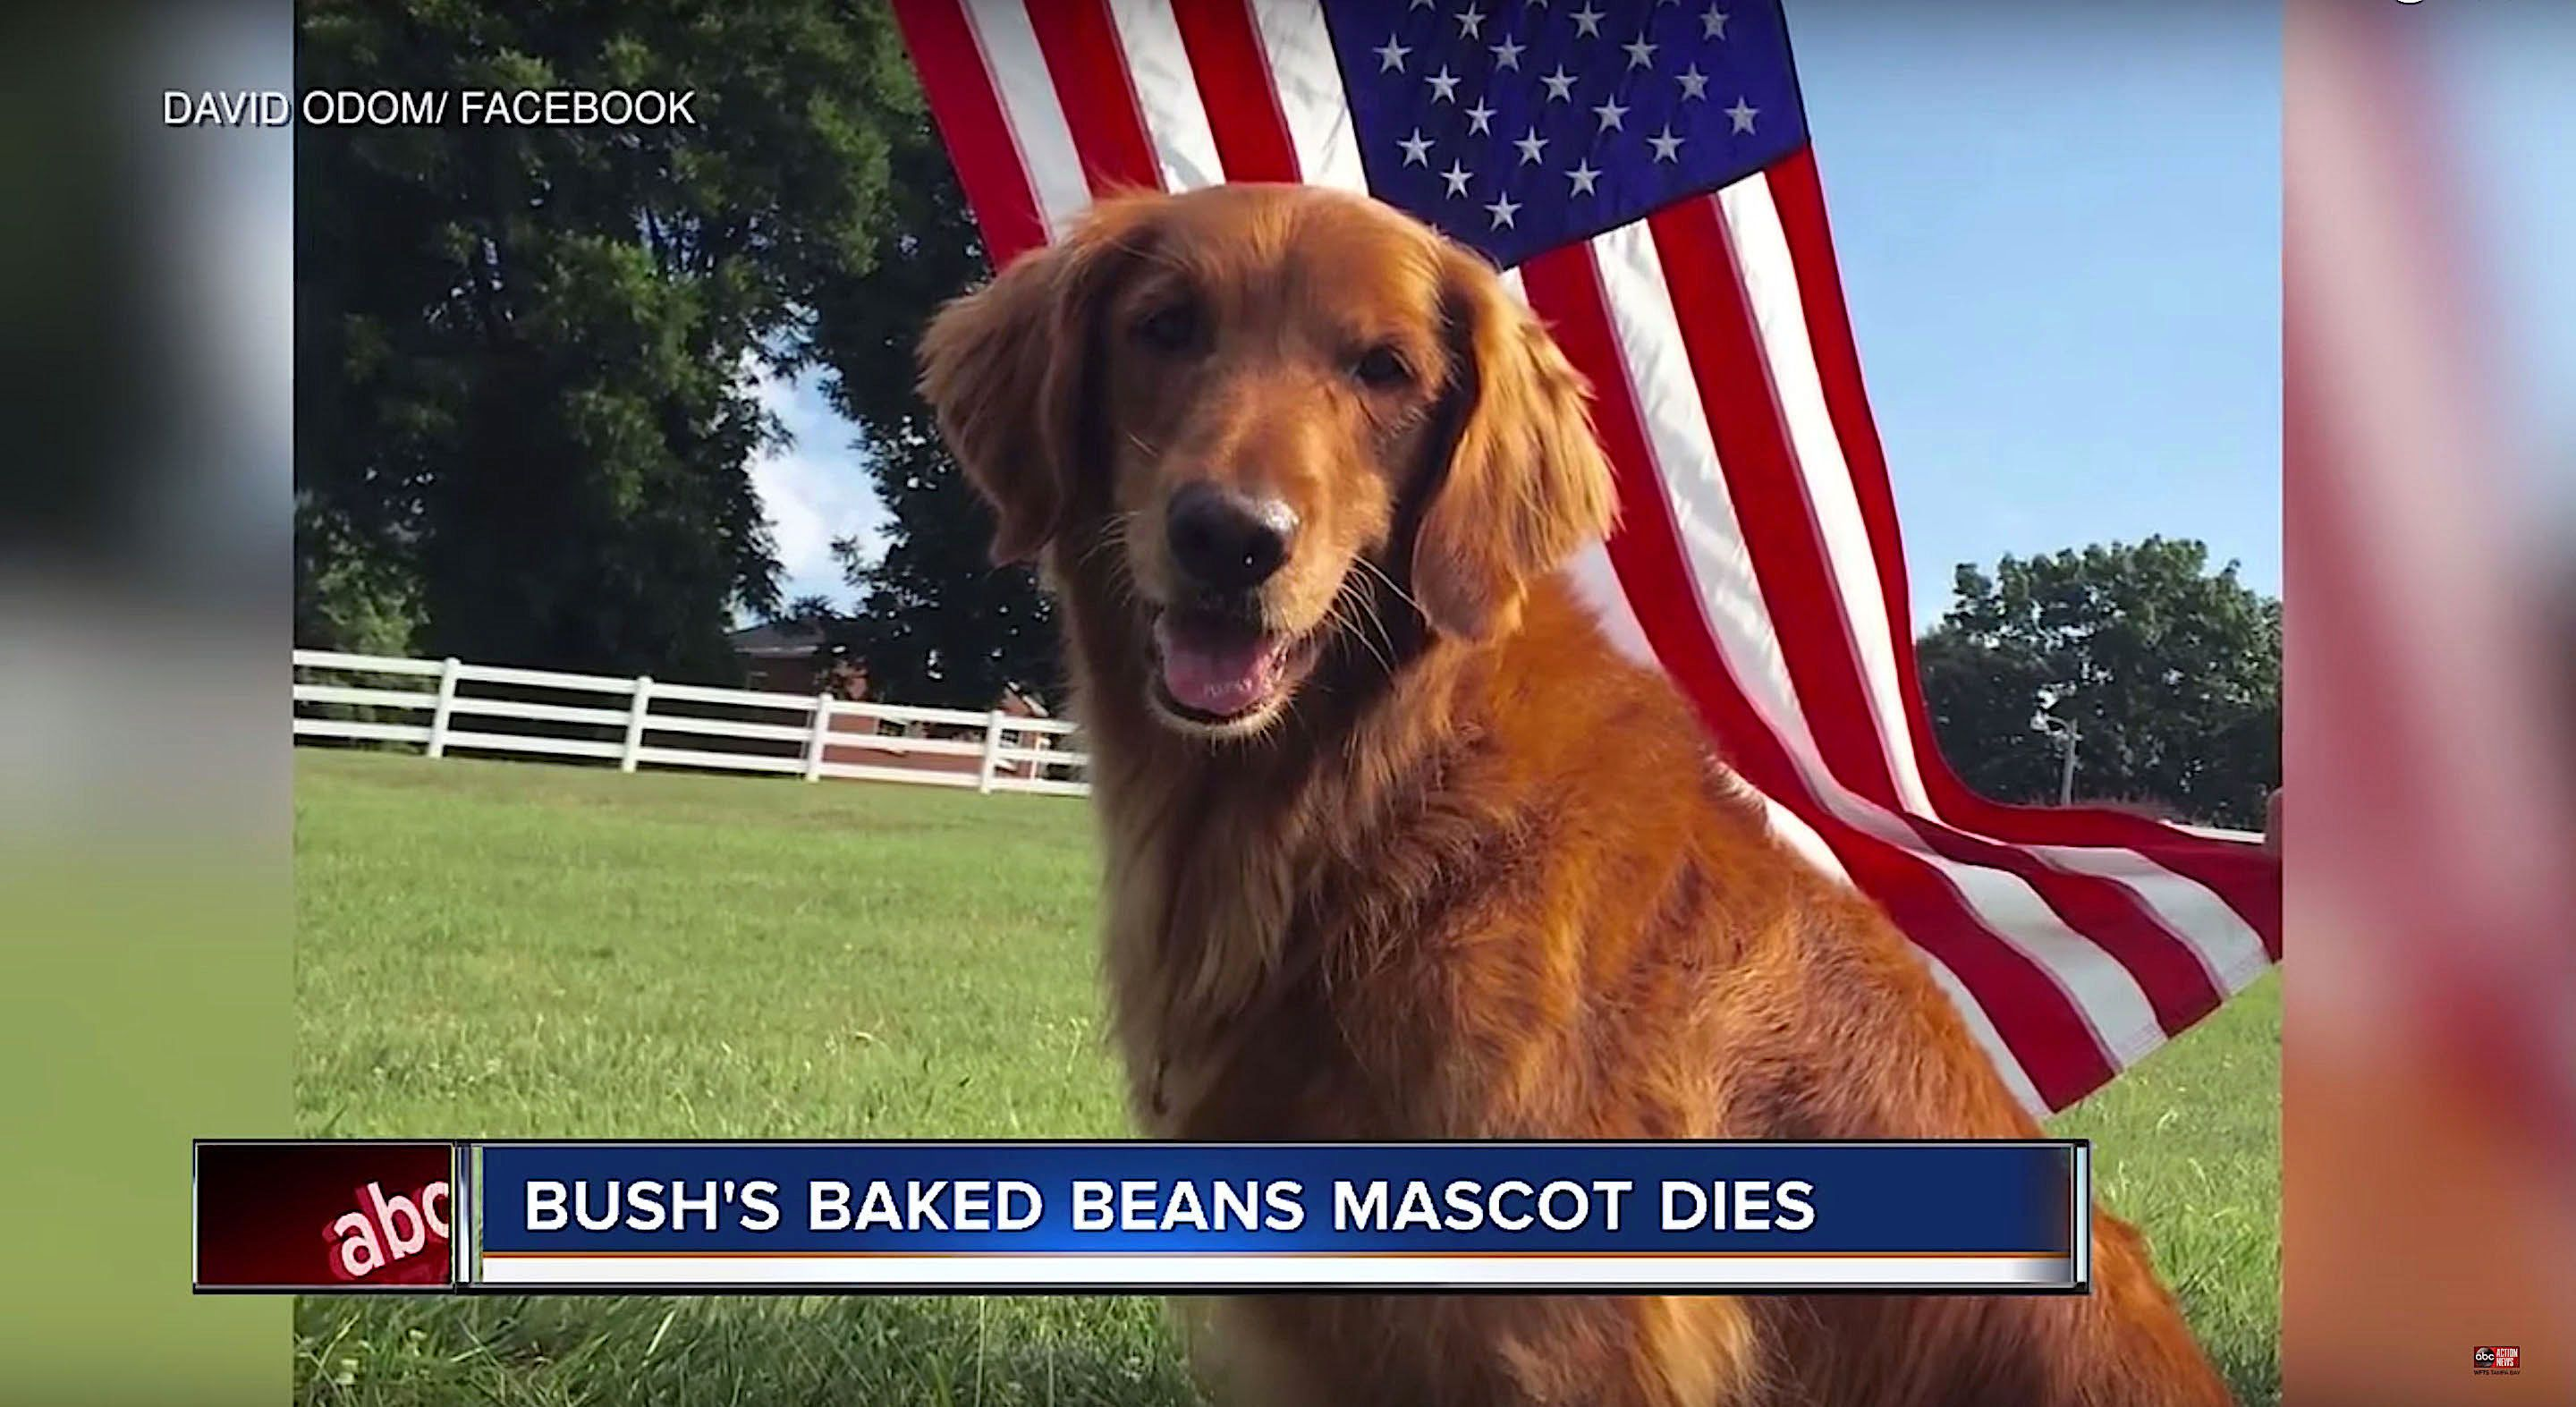 Sam one of the dogs that played Duke in Bushs Baked Beans commercials has died